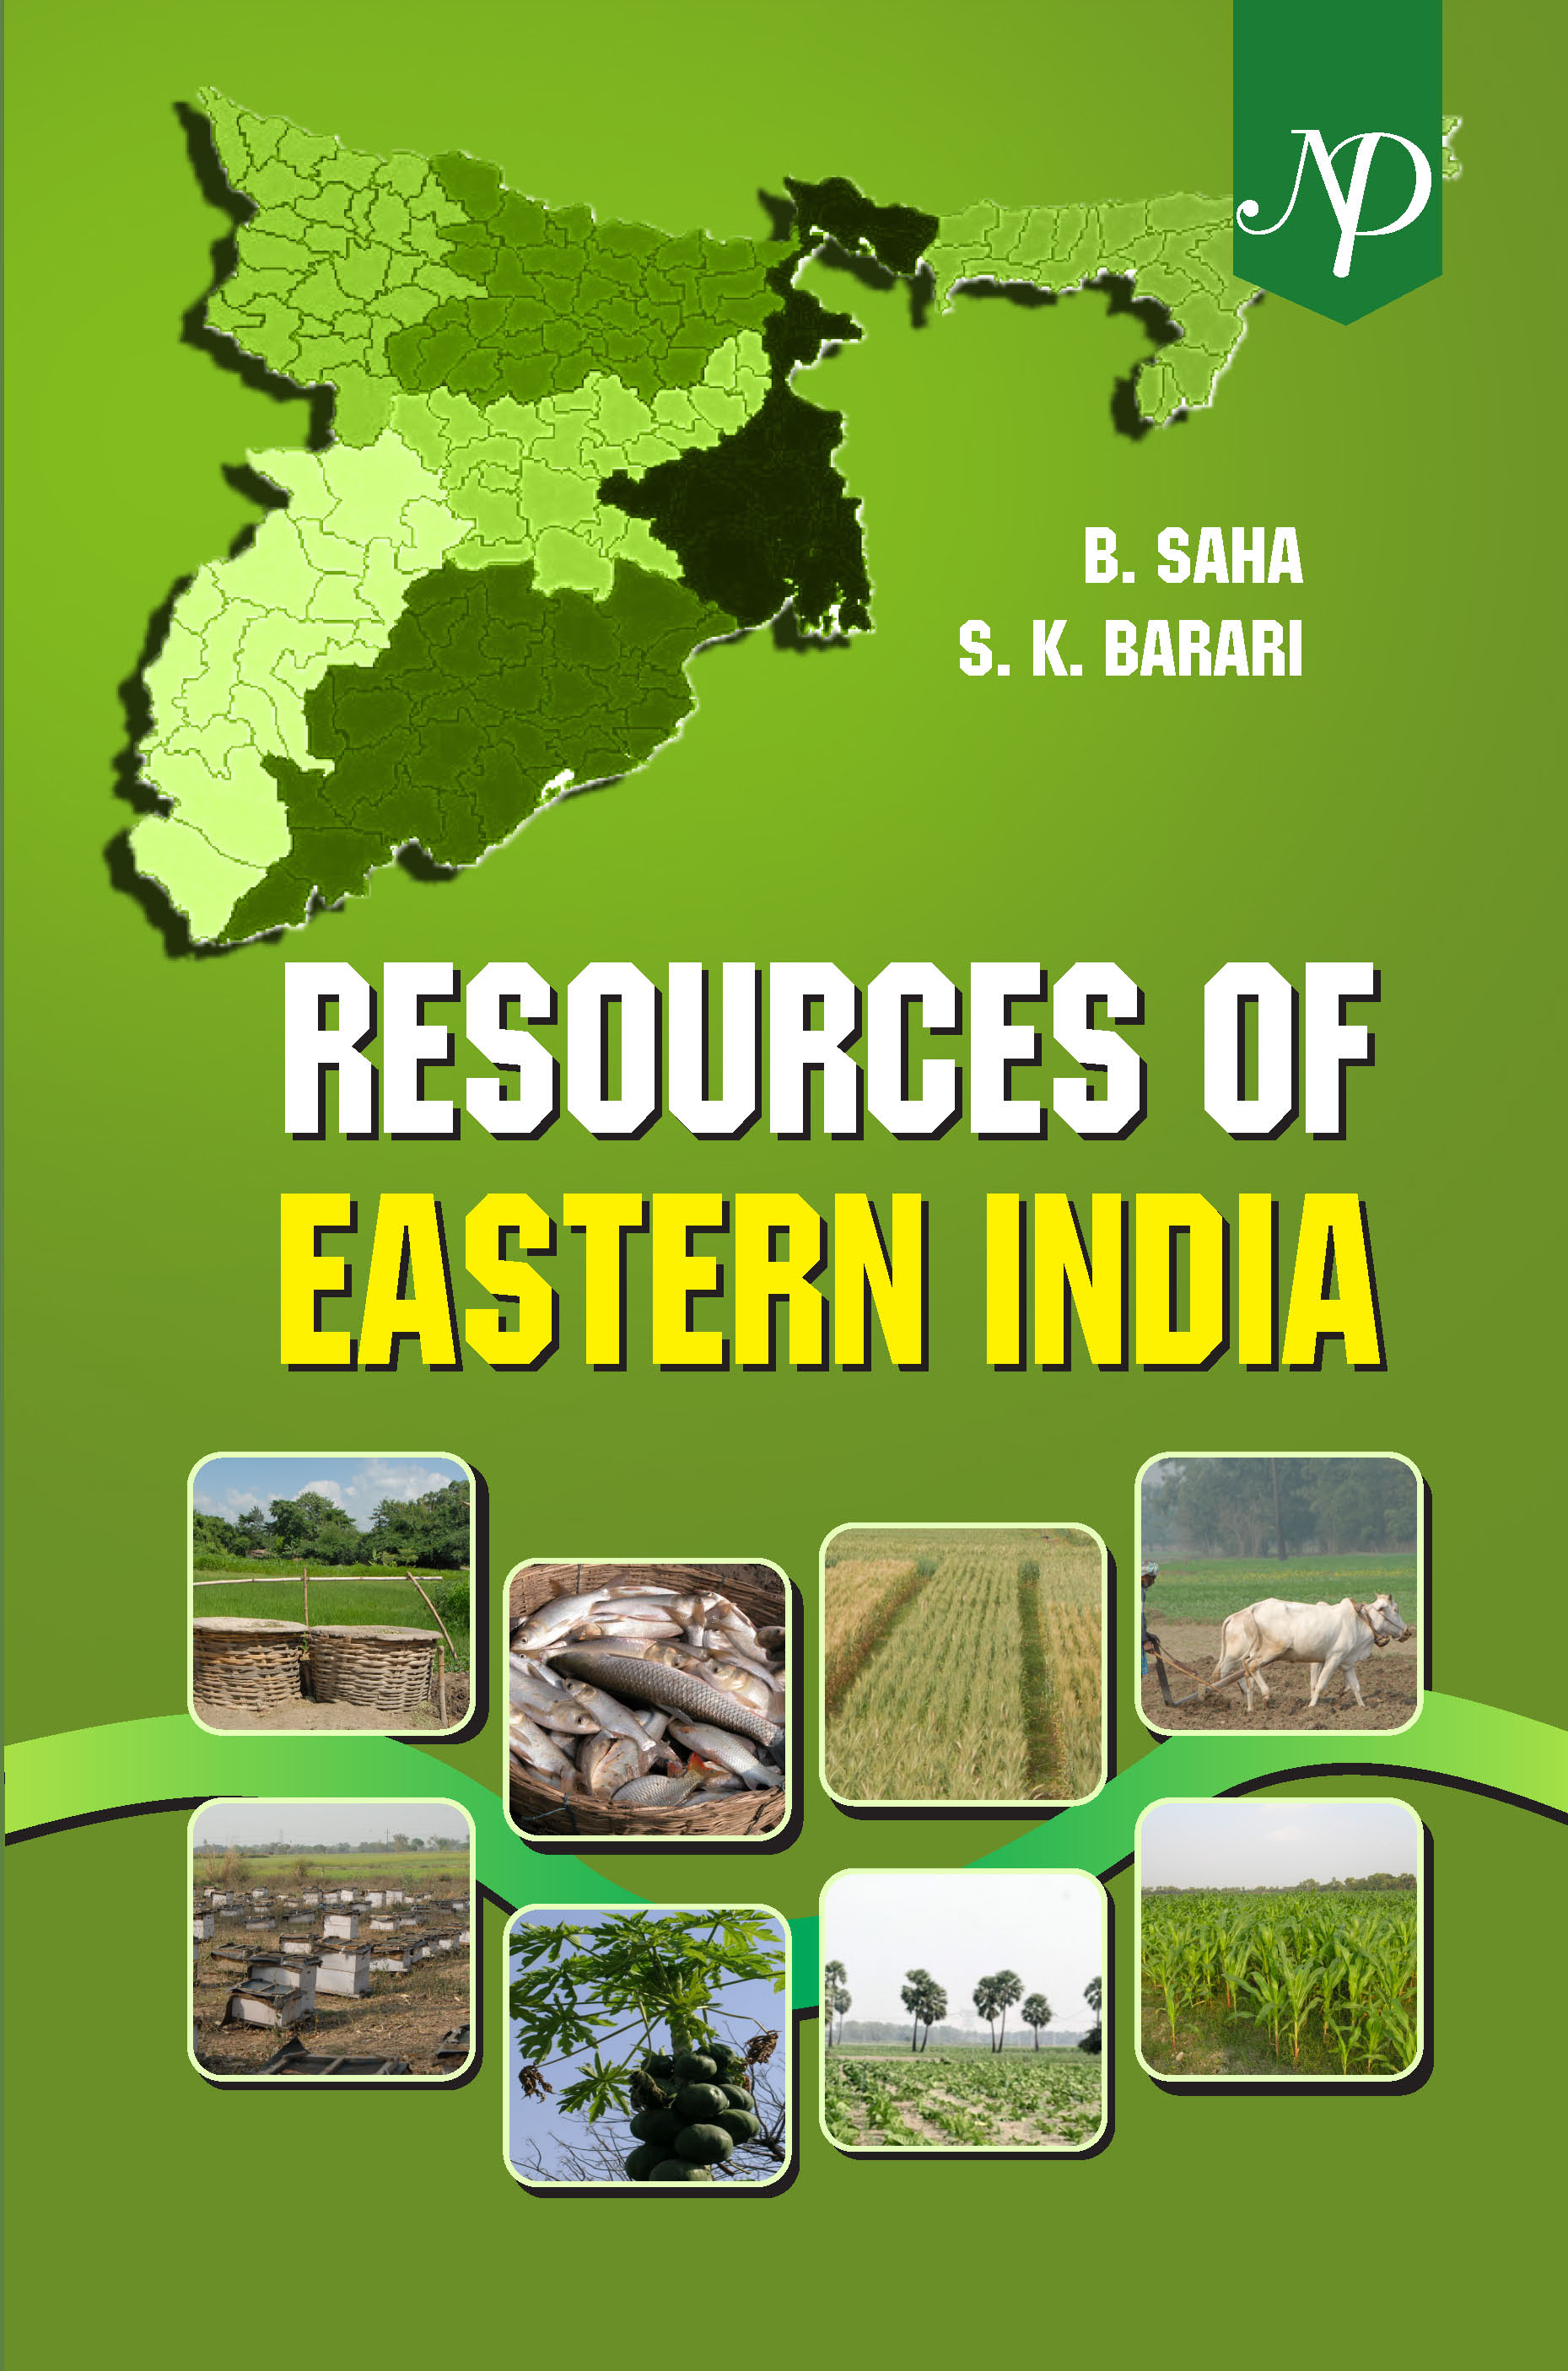 Resources of Eastern India